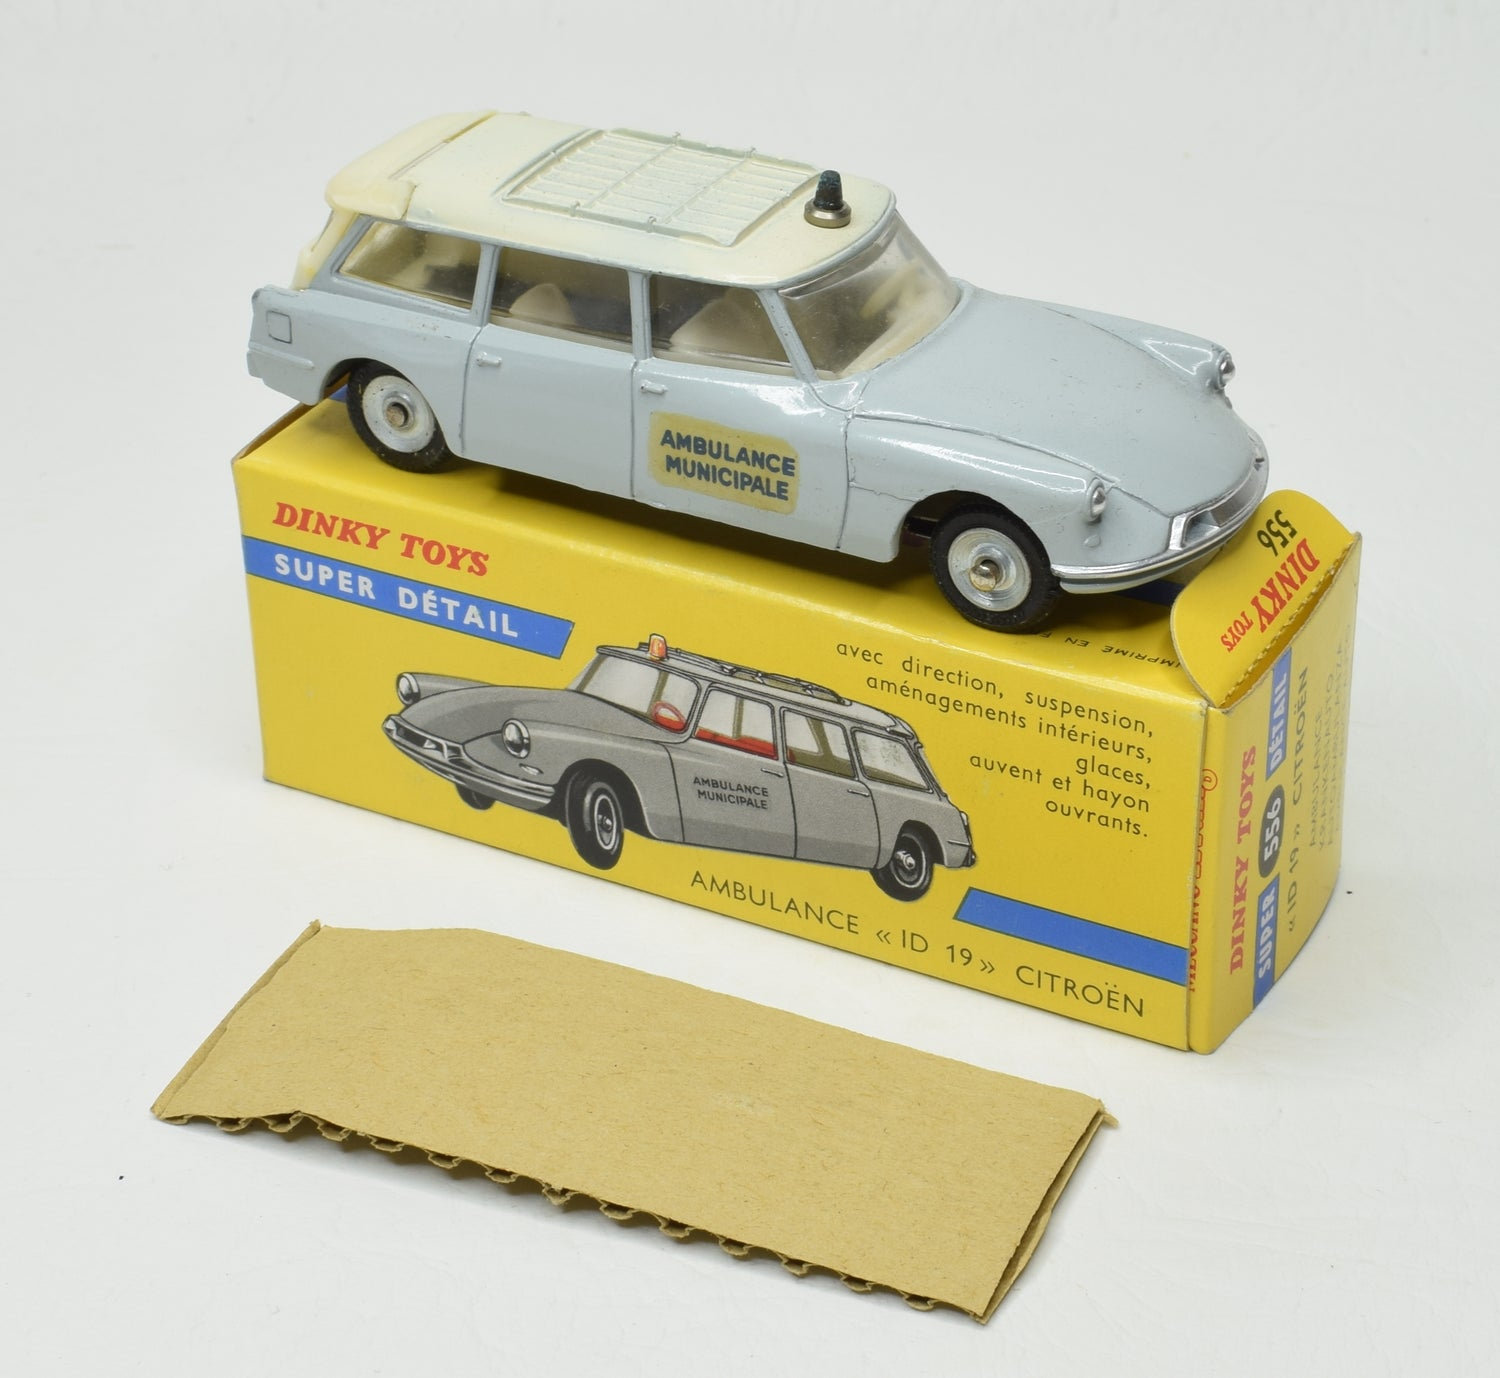 French Dinky Toys 556 Citroen D19 Ambulance Virtually Mint/Boxed 'Brecon' Collection Part 2